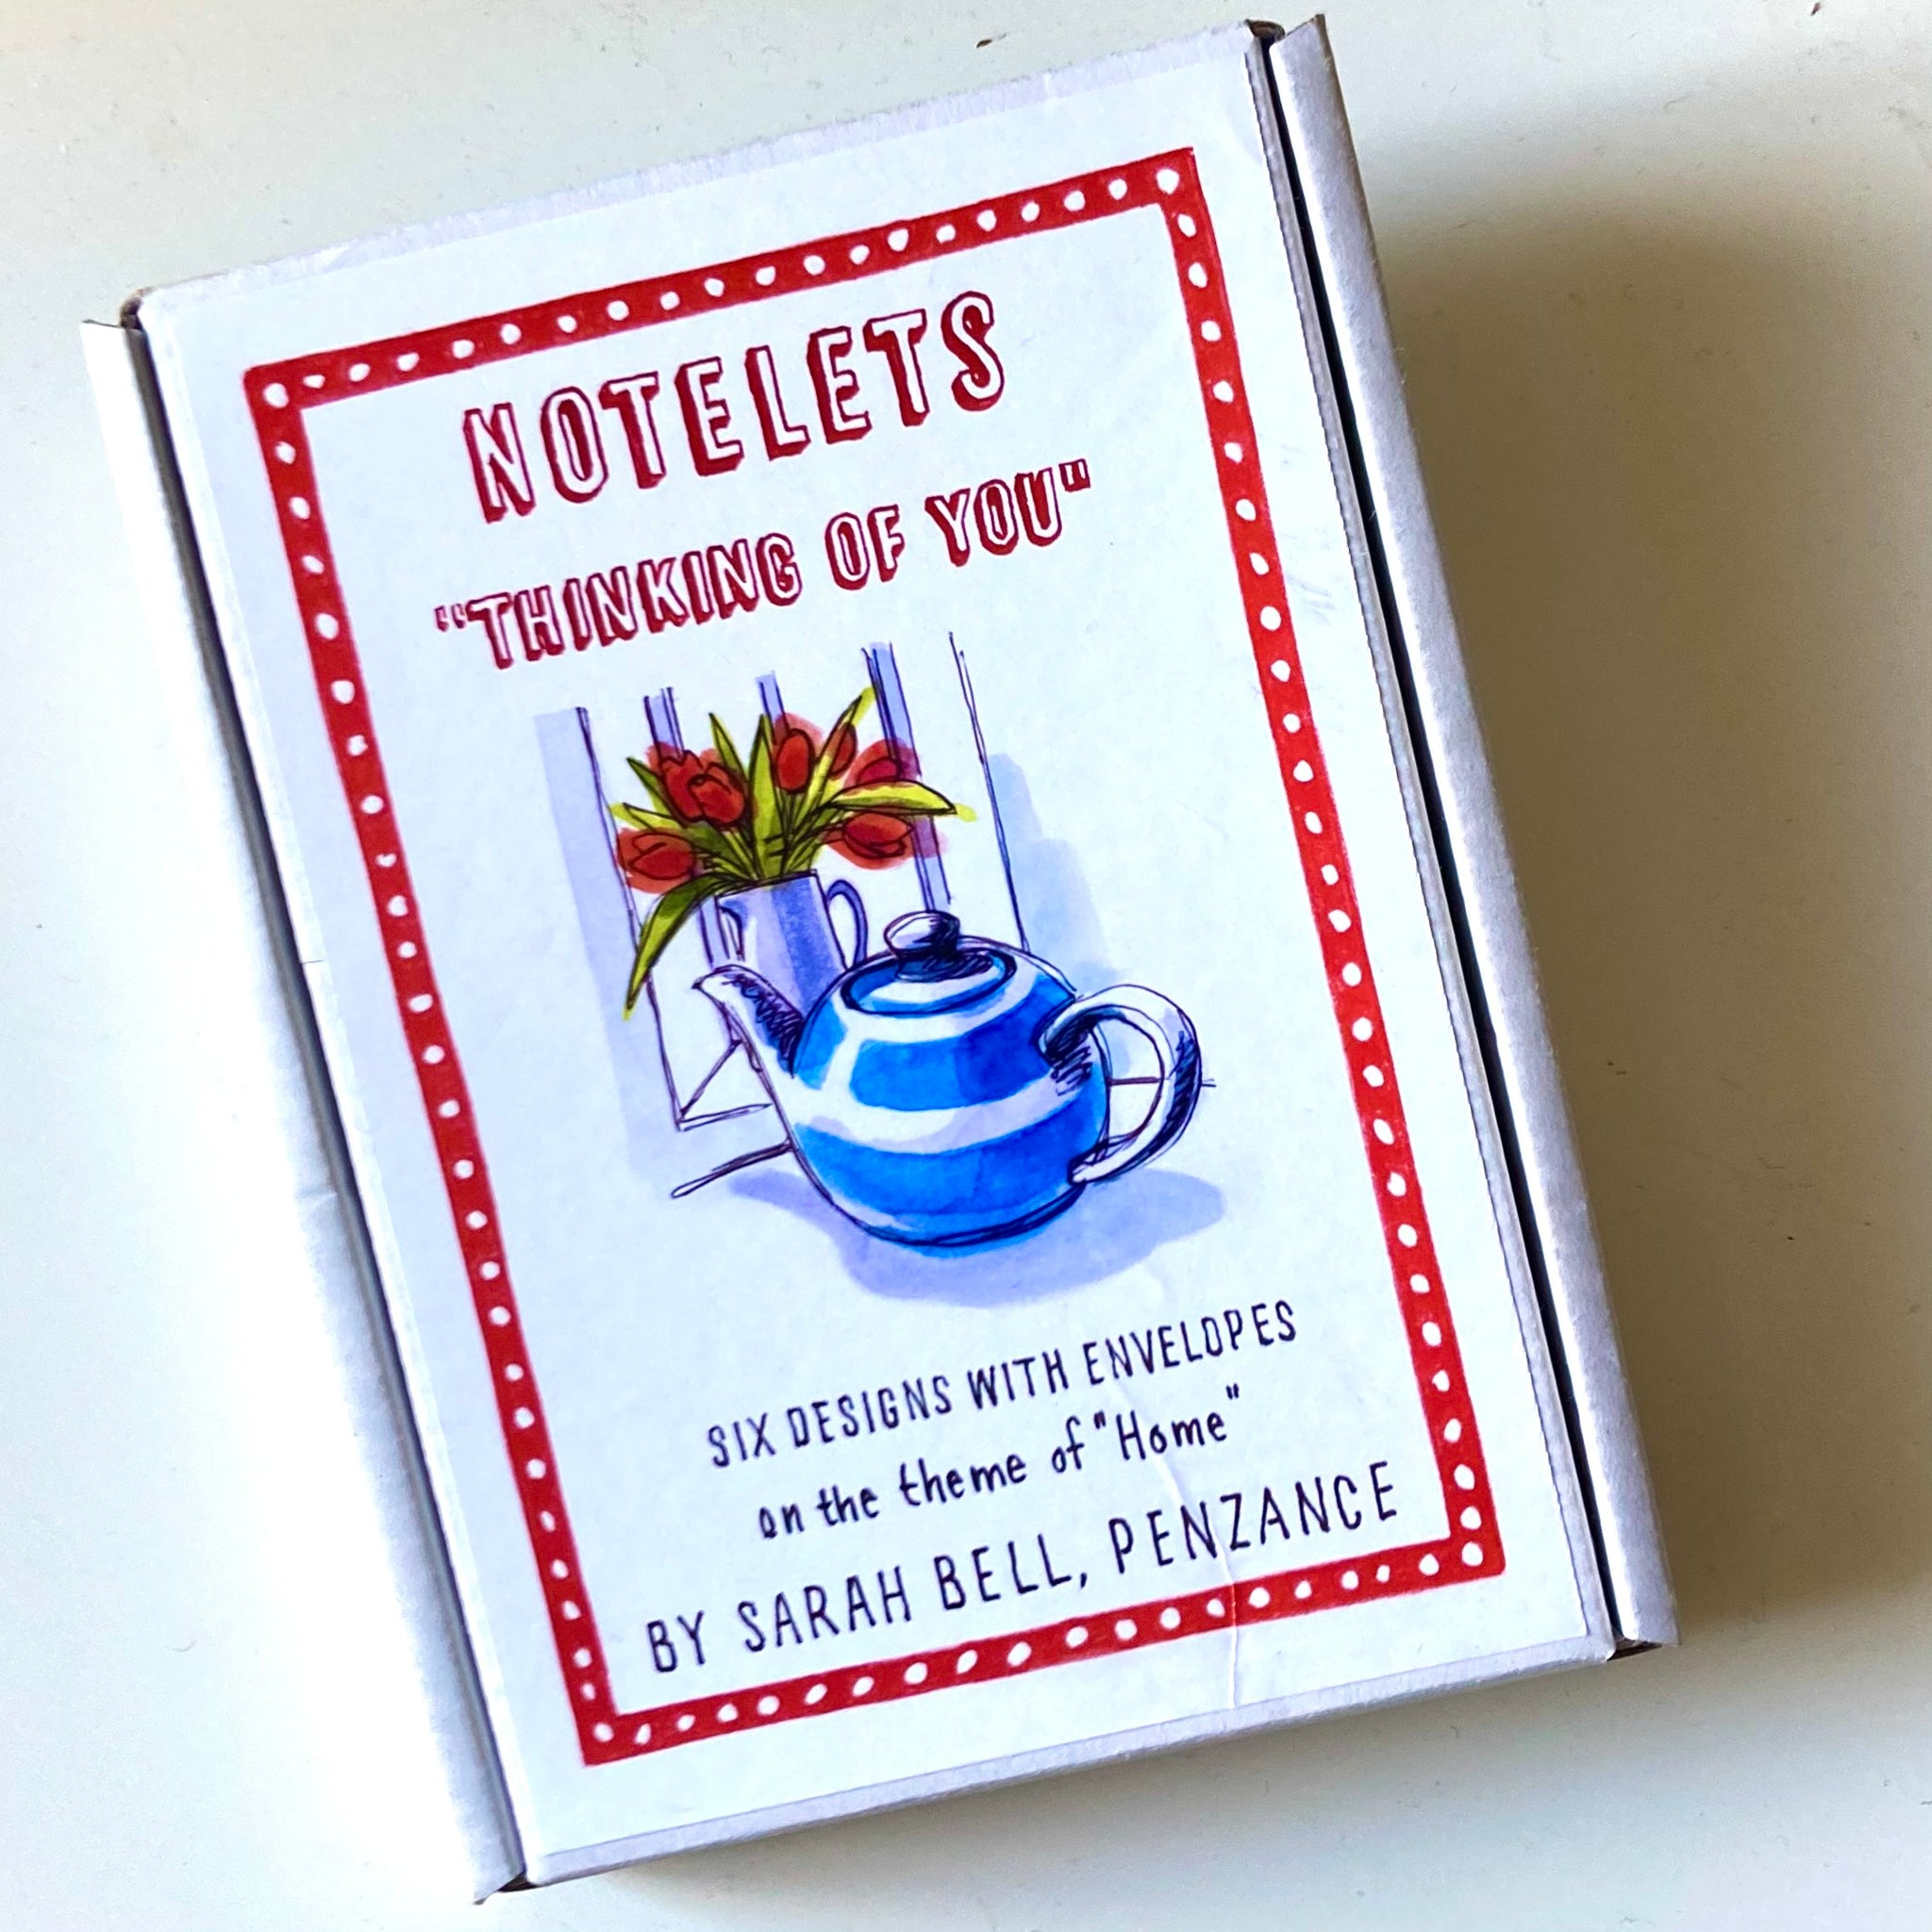 Box of 6 Notelets (Thinking of You) by Sarah Bell